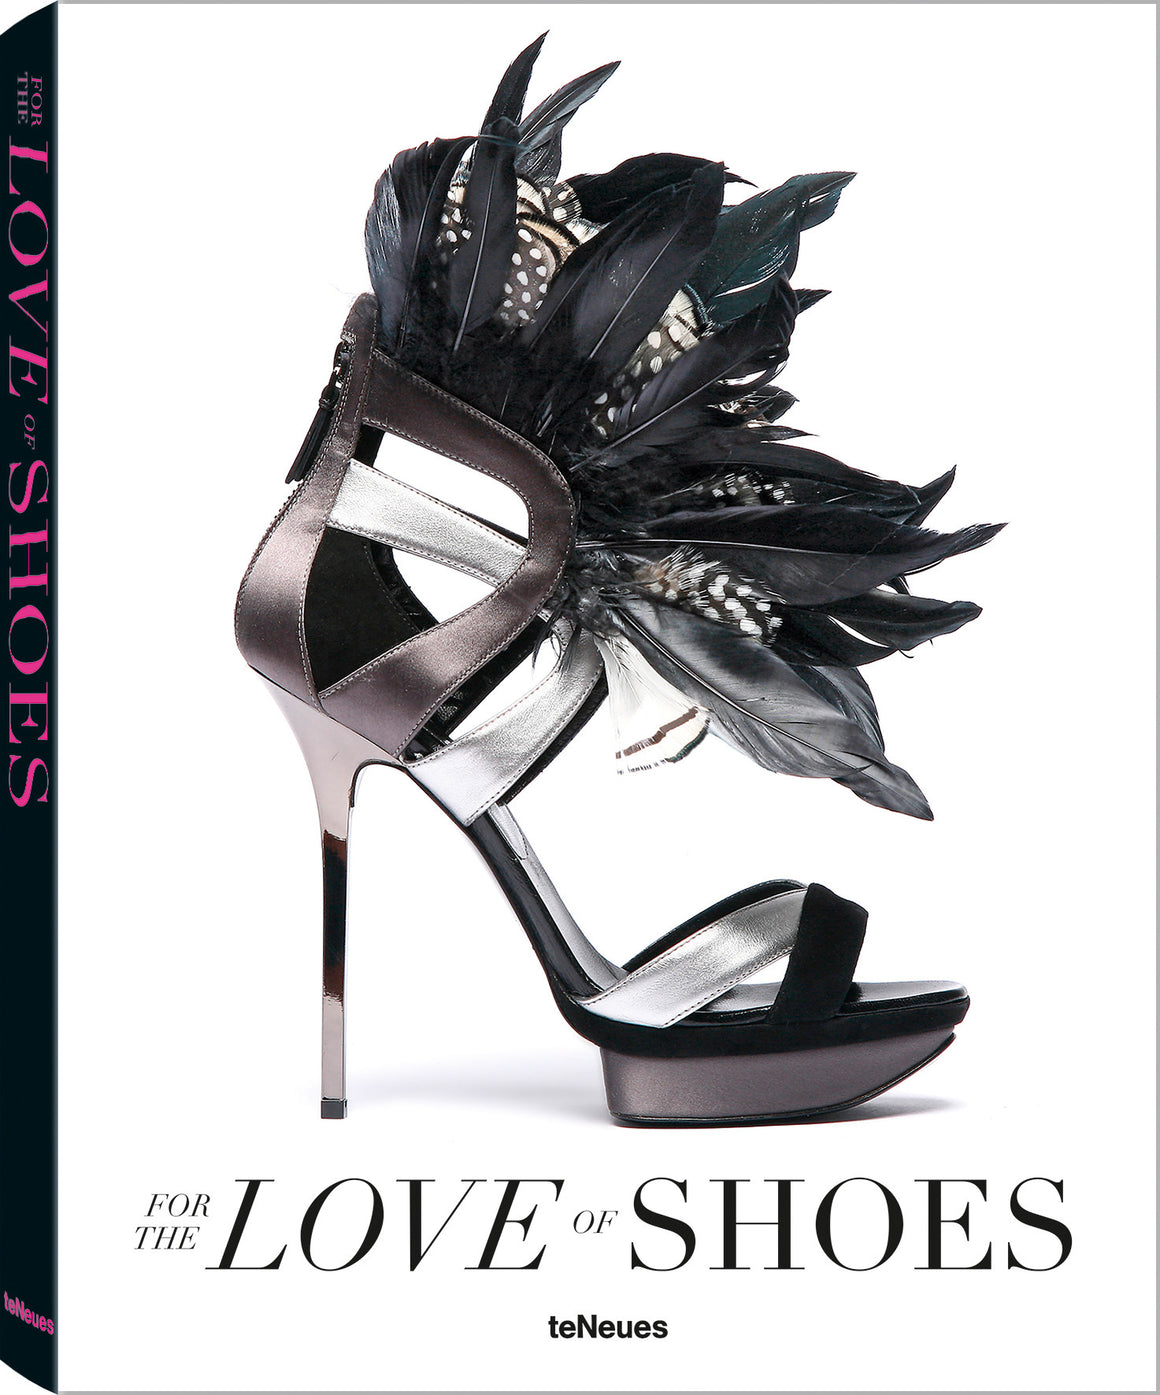 Patrice Farameh, For the Love of Shoes